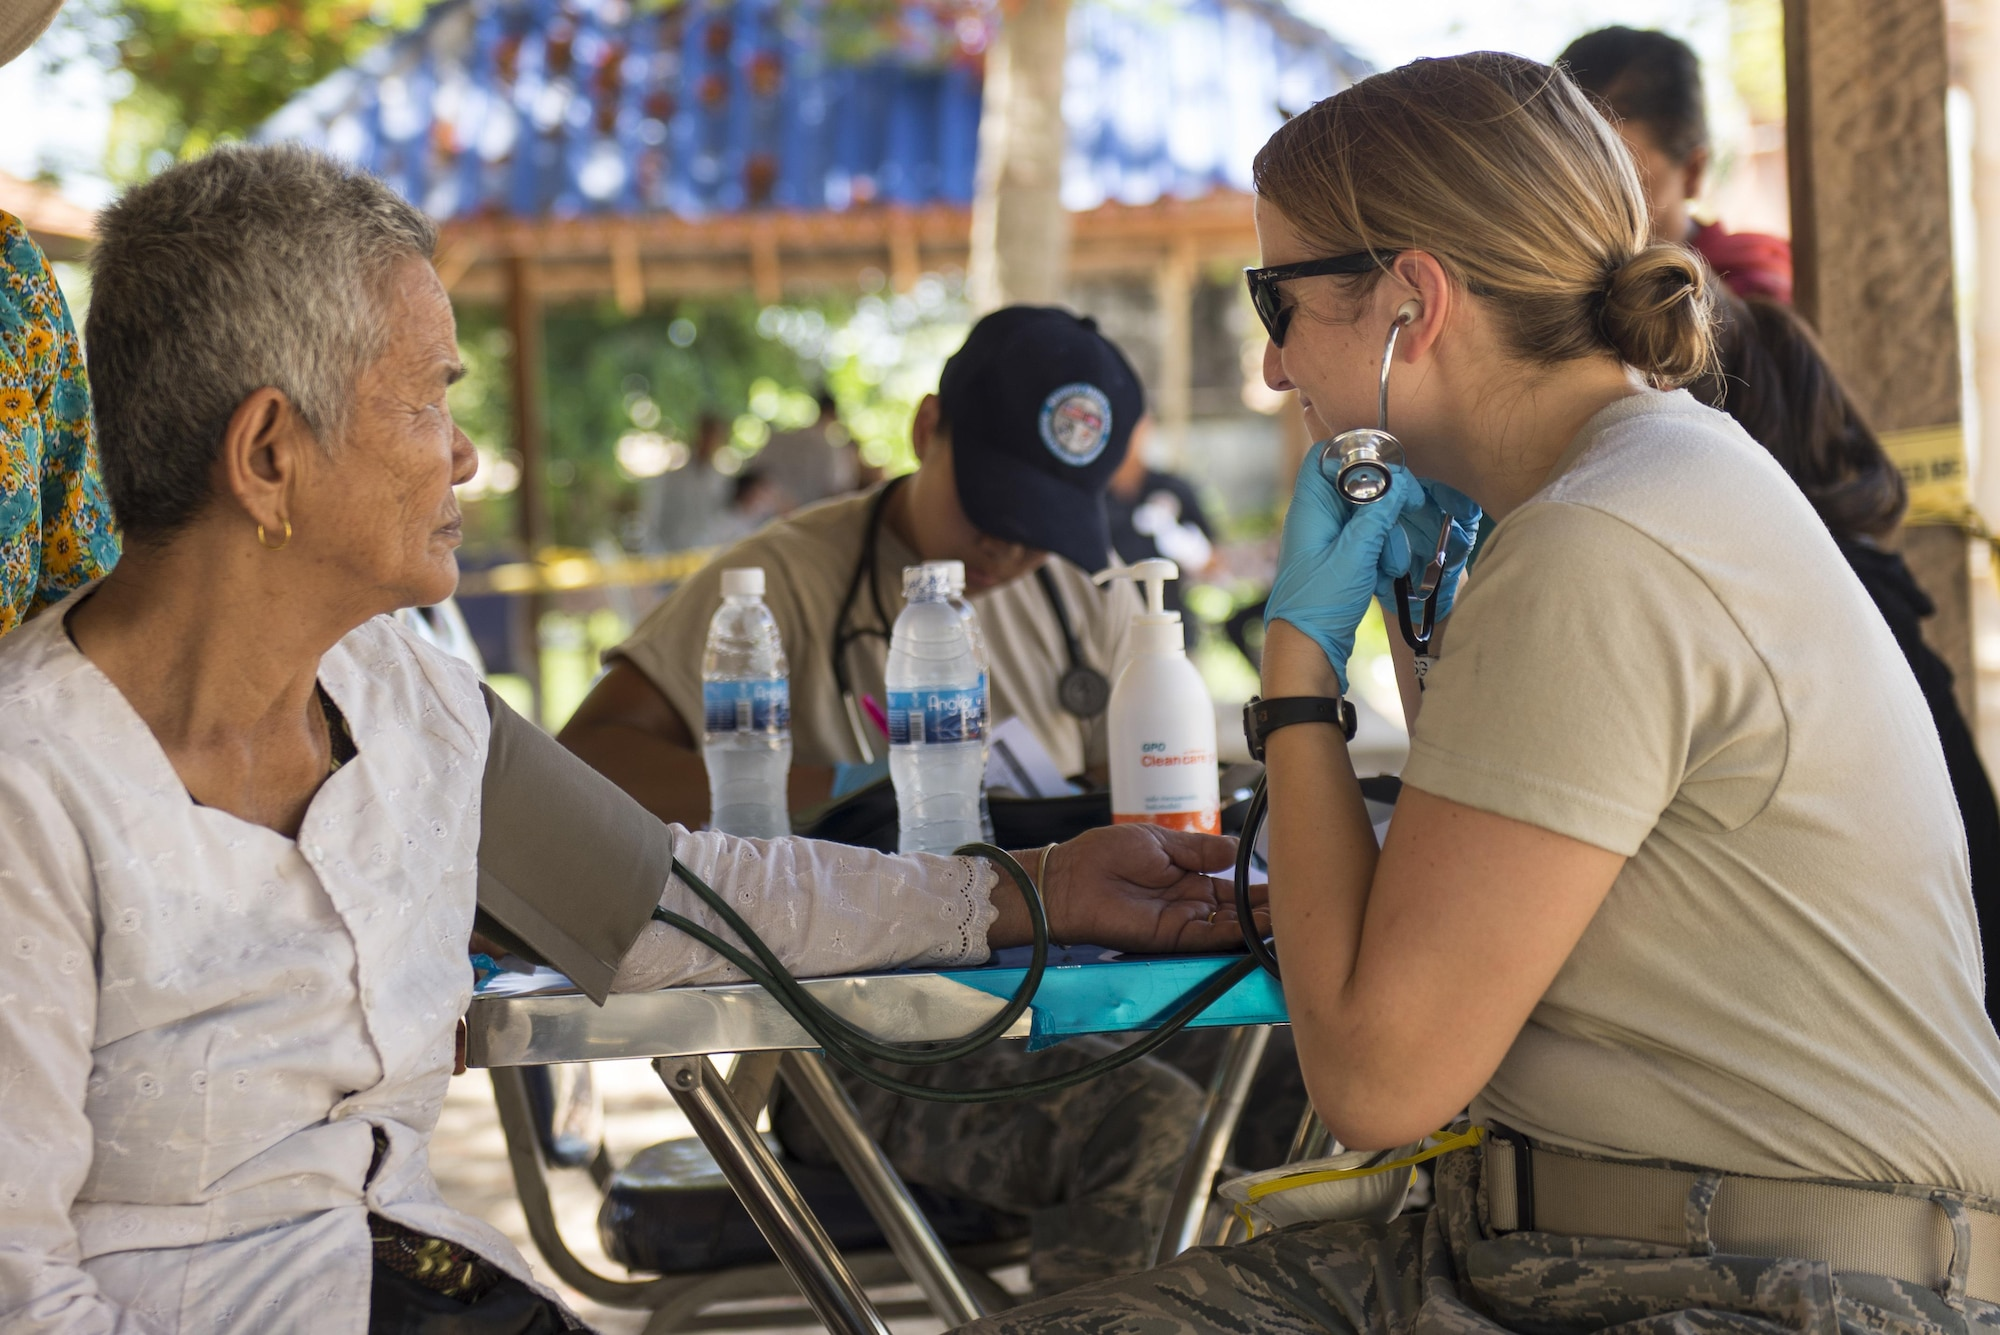 U.S. Air Force TSgt. Nicole Olive, Idaho Air National Guard's 124th Fighter Wing medical technician, listens to the heartbeat of patient during Pacific Angel 16-2, June 13, 2016, in Kampot Province, Cambodia.  The Idaho National Guard has partnered with Cambodia's Armed Forces to train together through the Air National Guard's State Partnership Program. The program is designed to provide a consistent, enduring, and genuine presence, built over time through professional, personal, and institutional relationships that span continents and decades. (U.S. Air Force photo by Senior Airman Omari Bernard/Released)